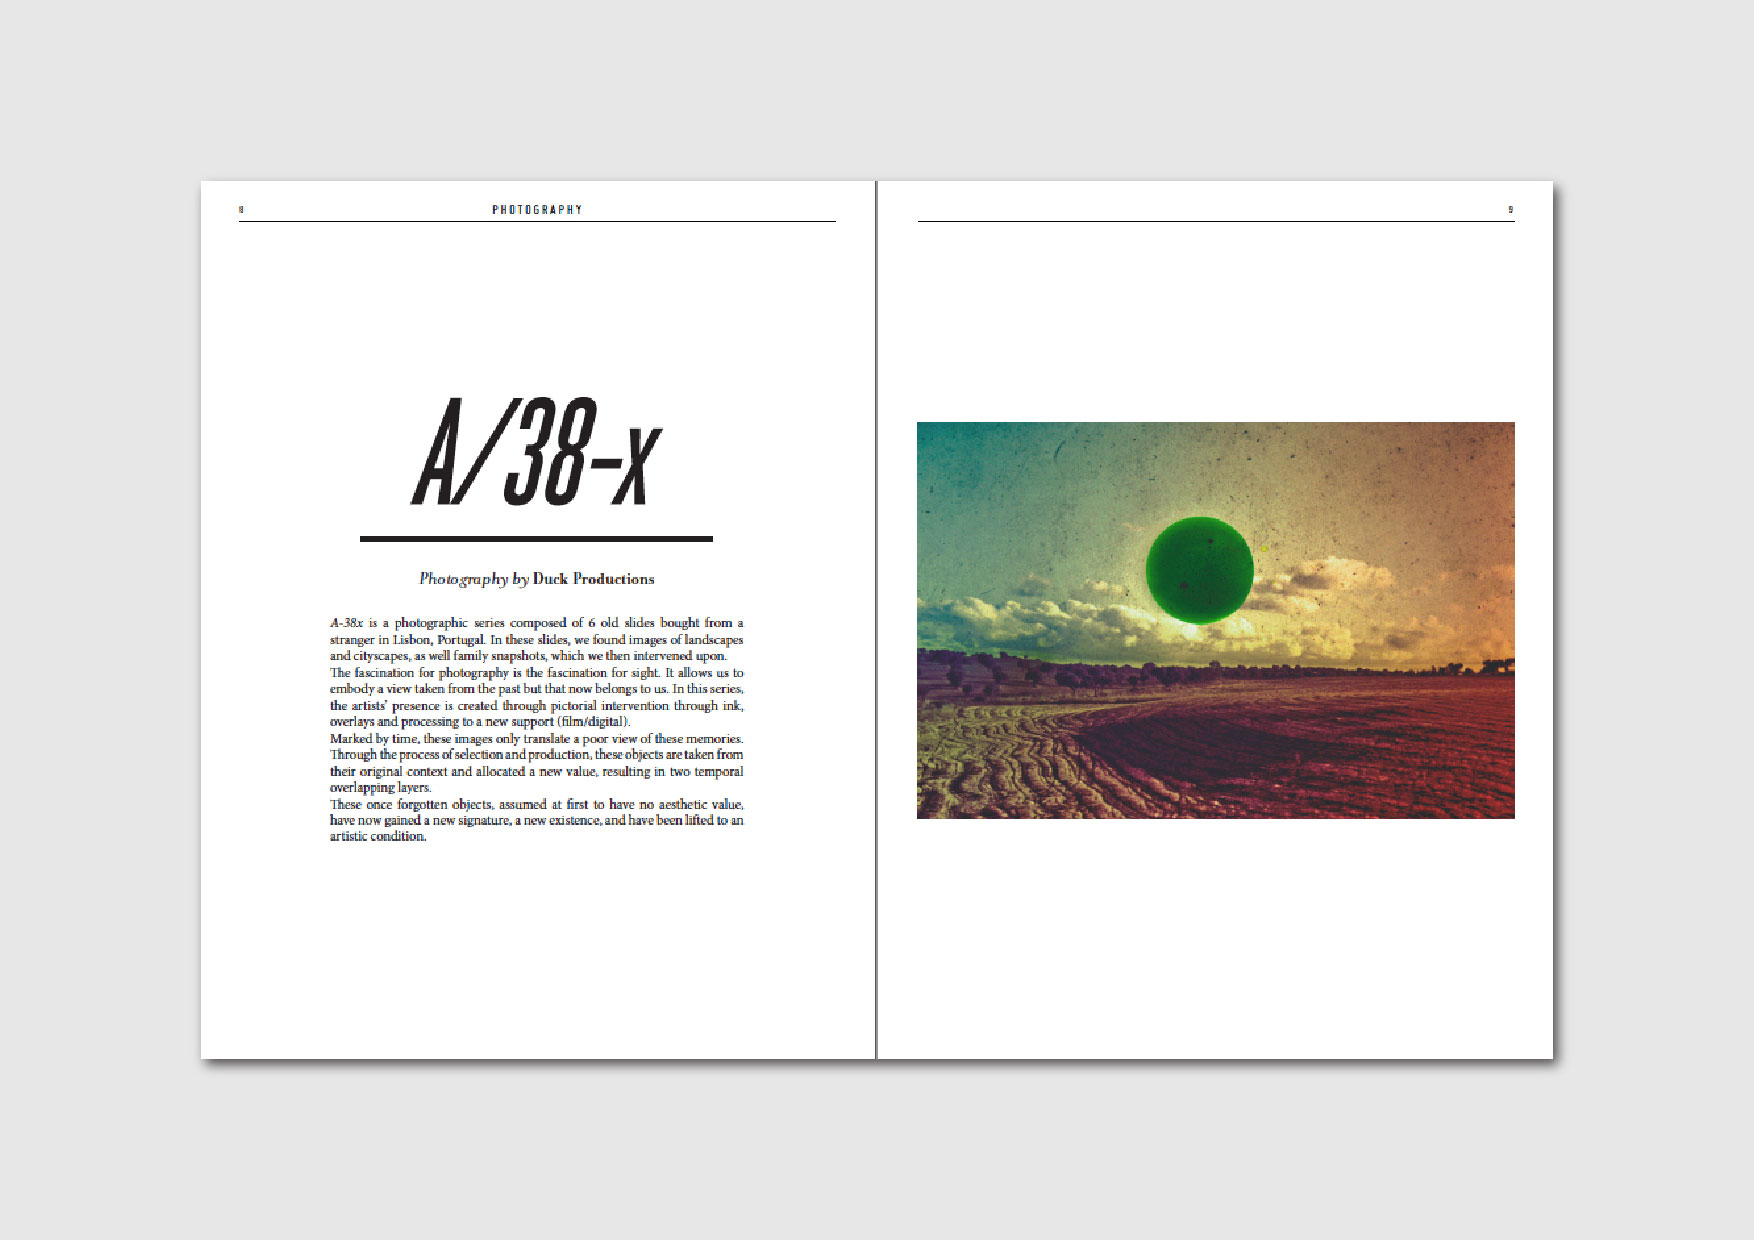 A/38-x: photo series by Duck Productions